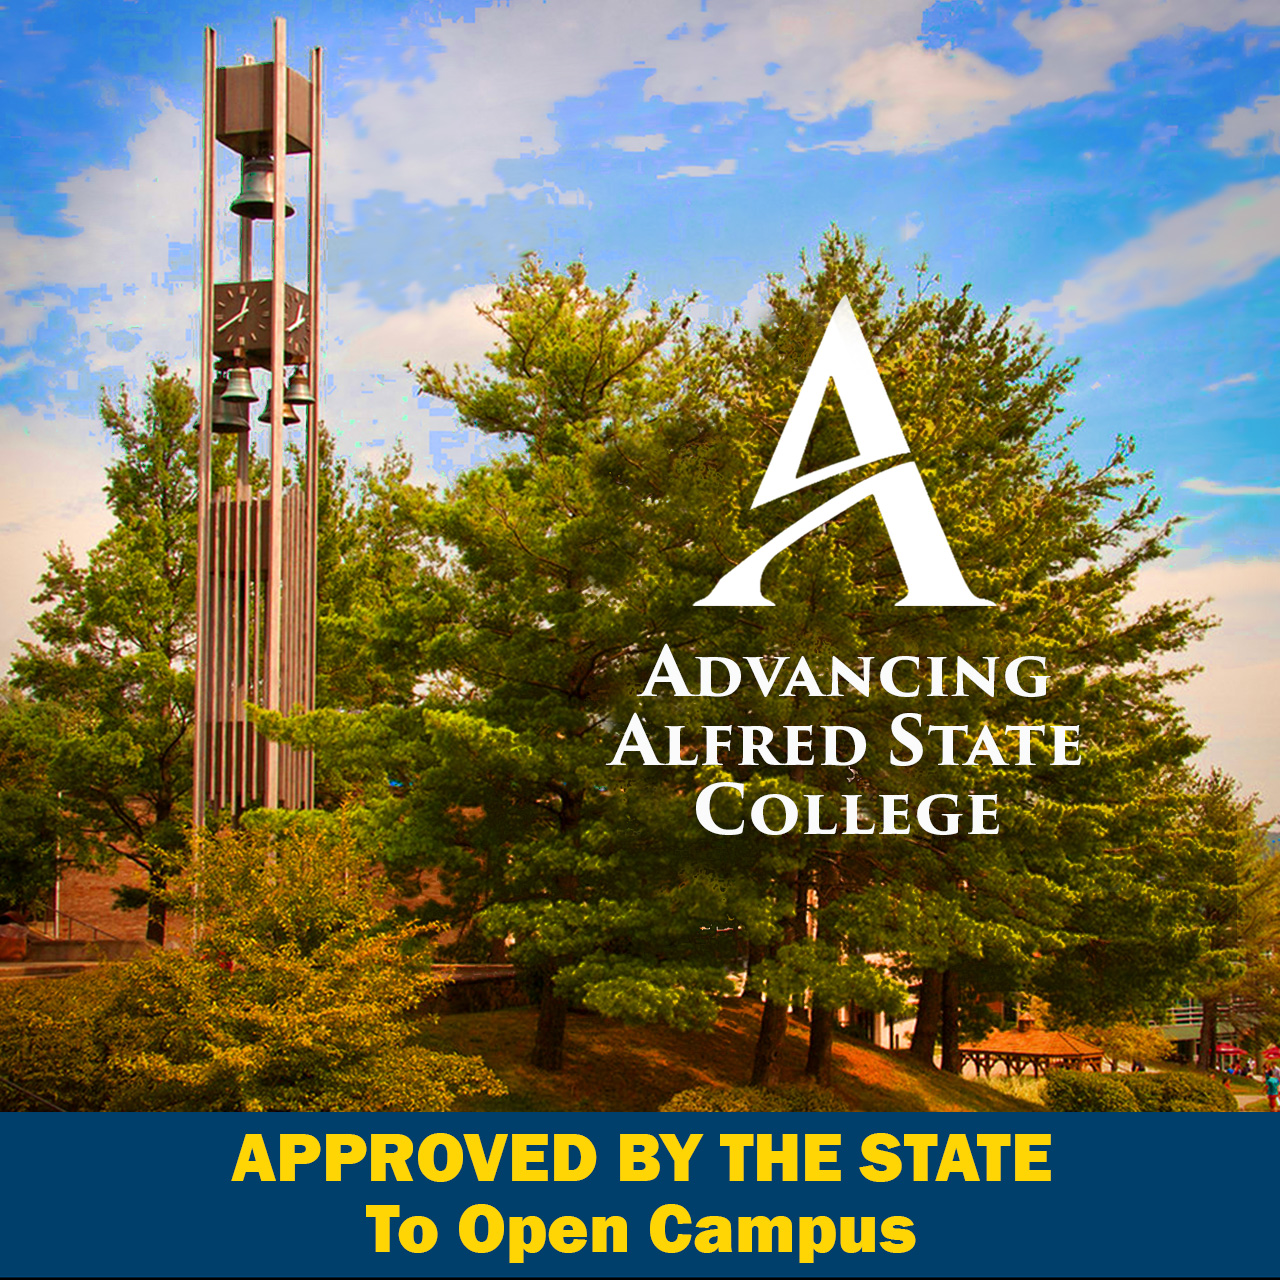 Picture of Alfred State campus, including bell tower. Approved by the State to open campus